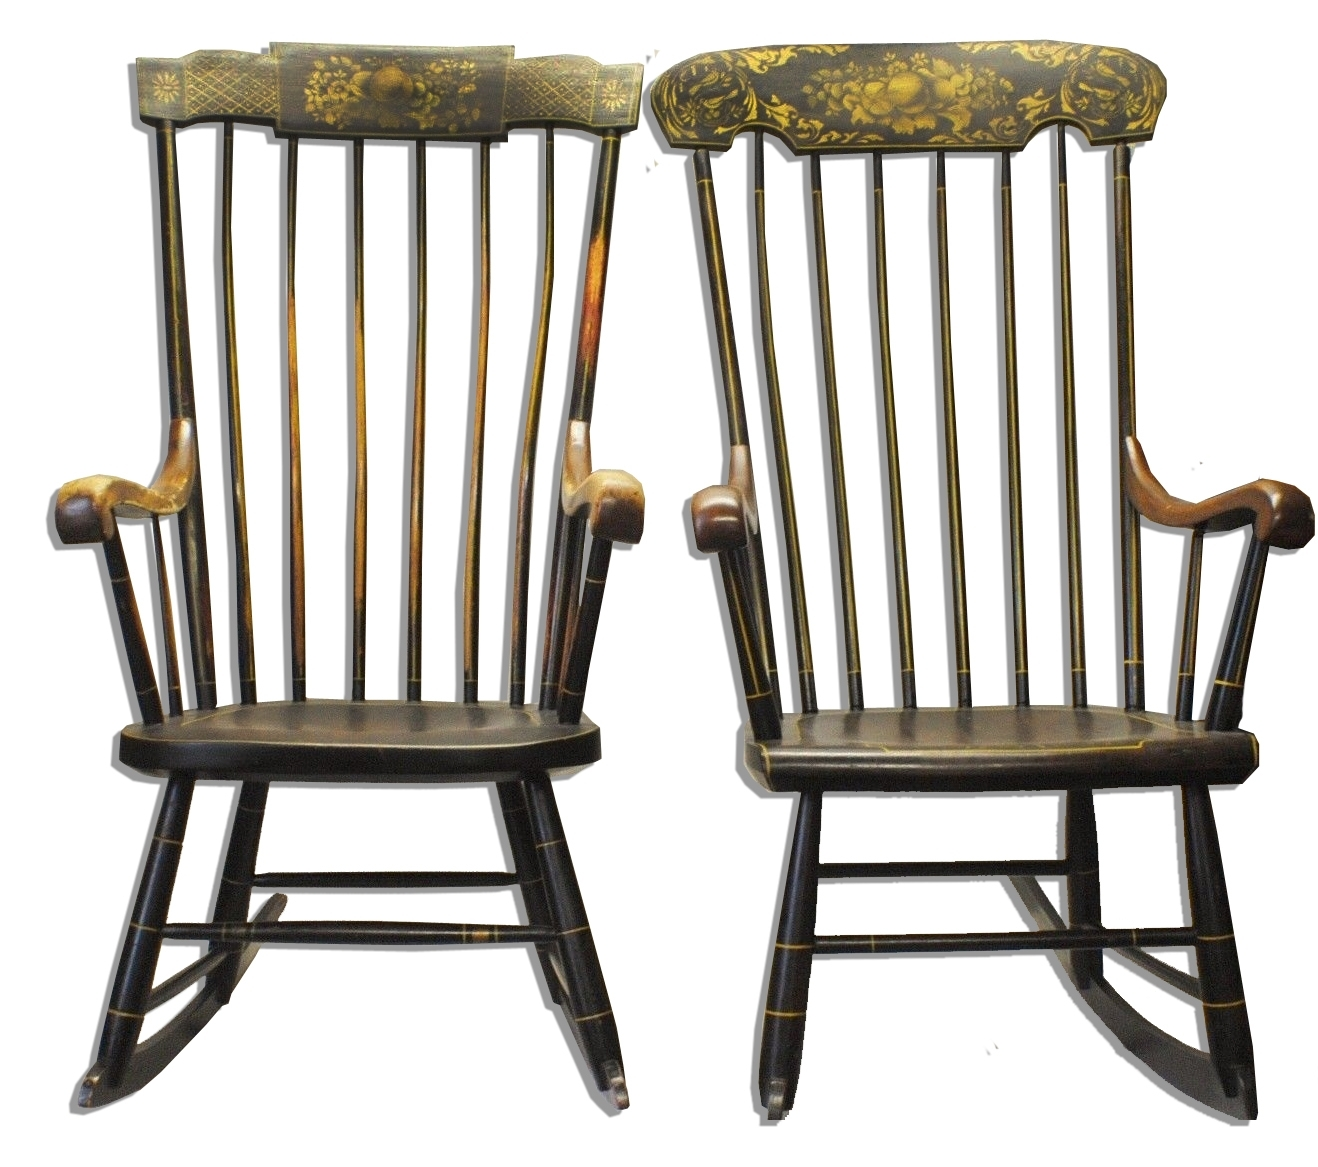 Lincoln's Rocking Chairs Sell For $26K – Antique Trader Within Antique Rocking Chairs (#11 of 15)